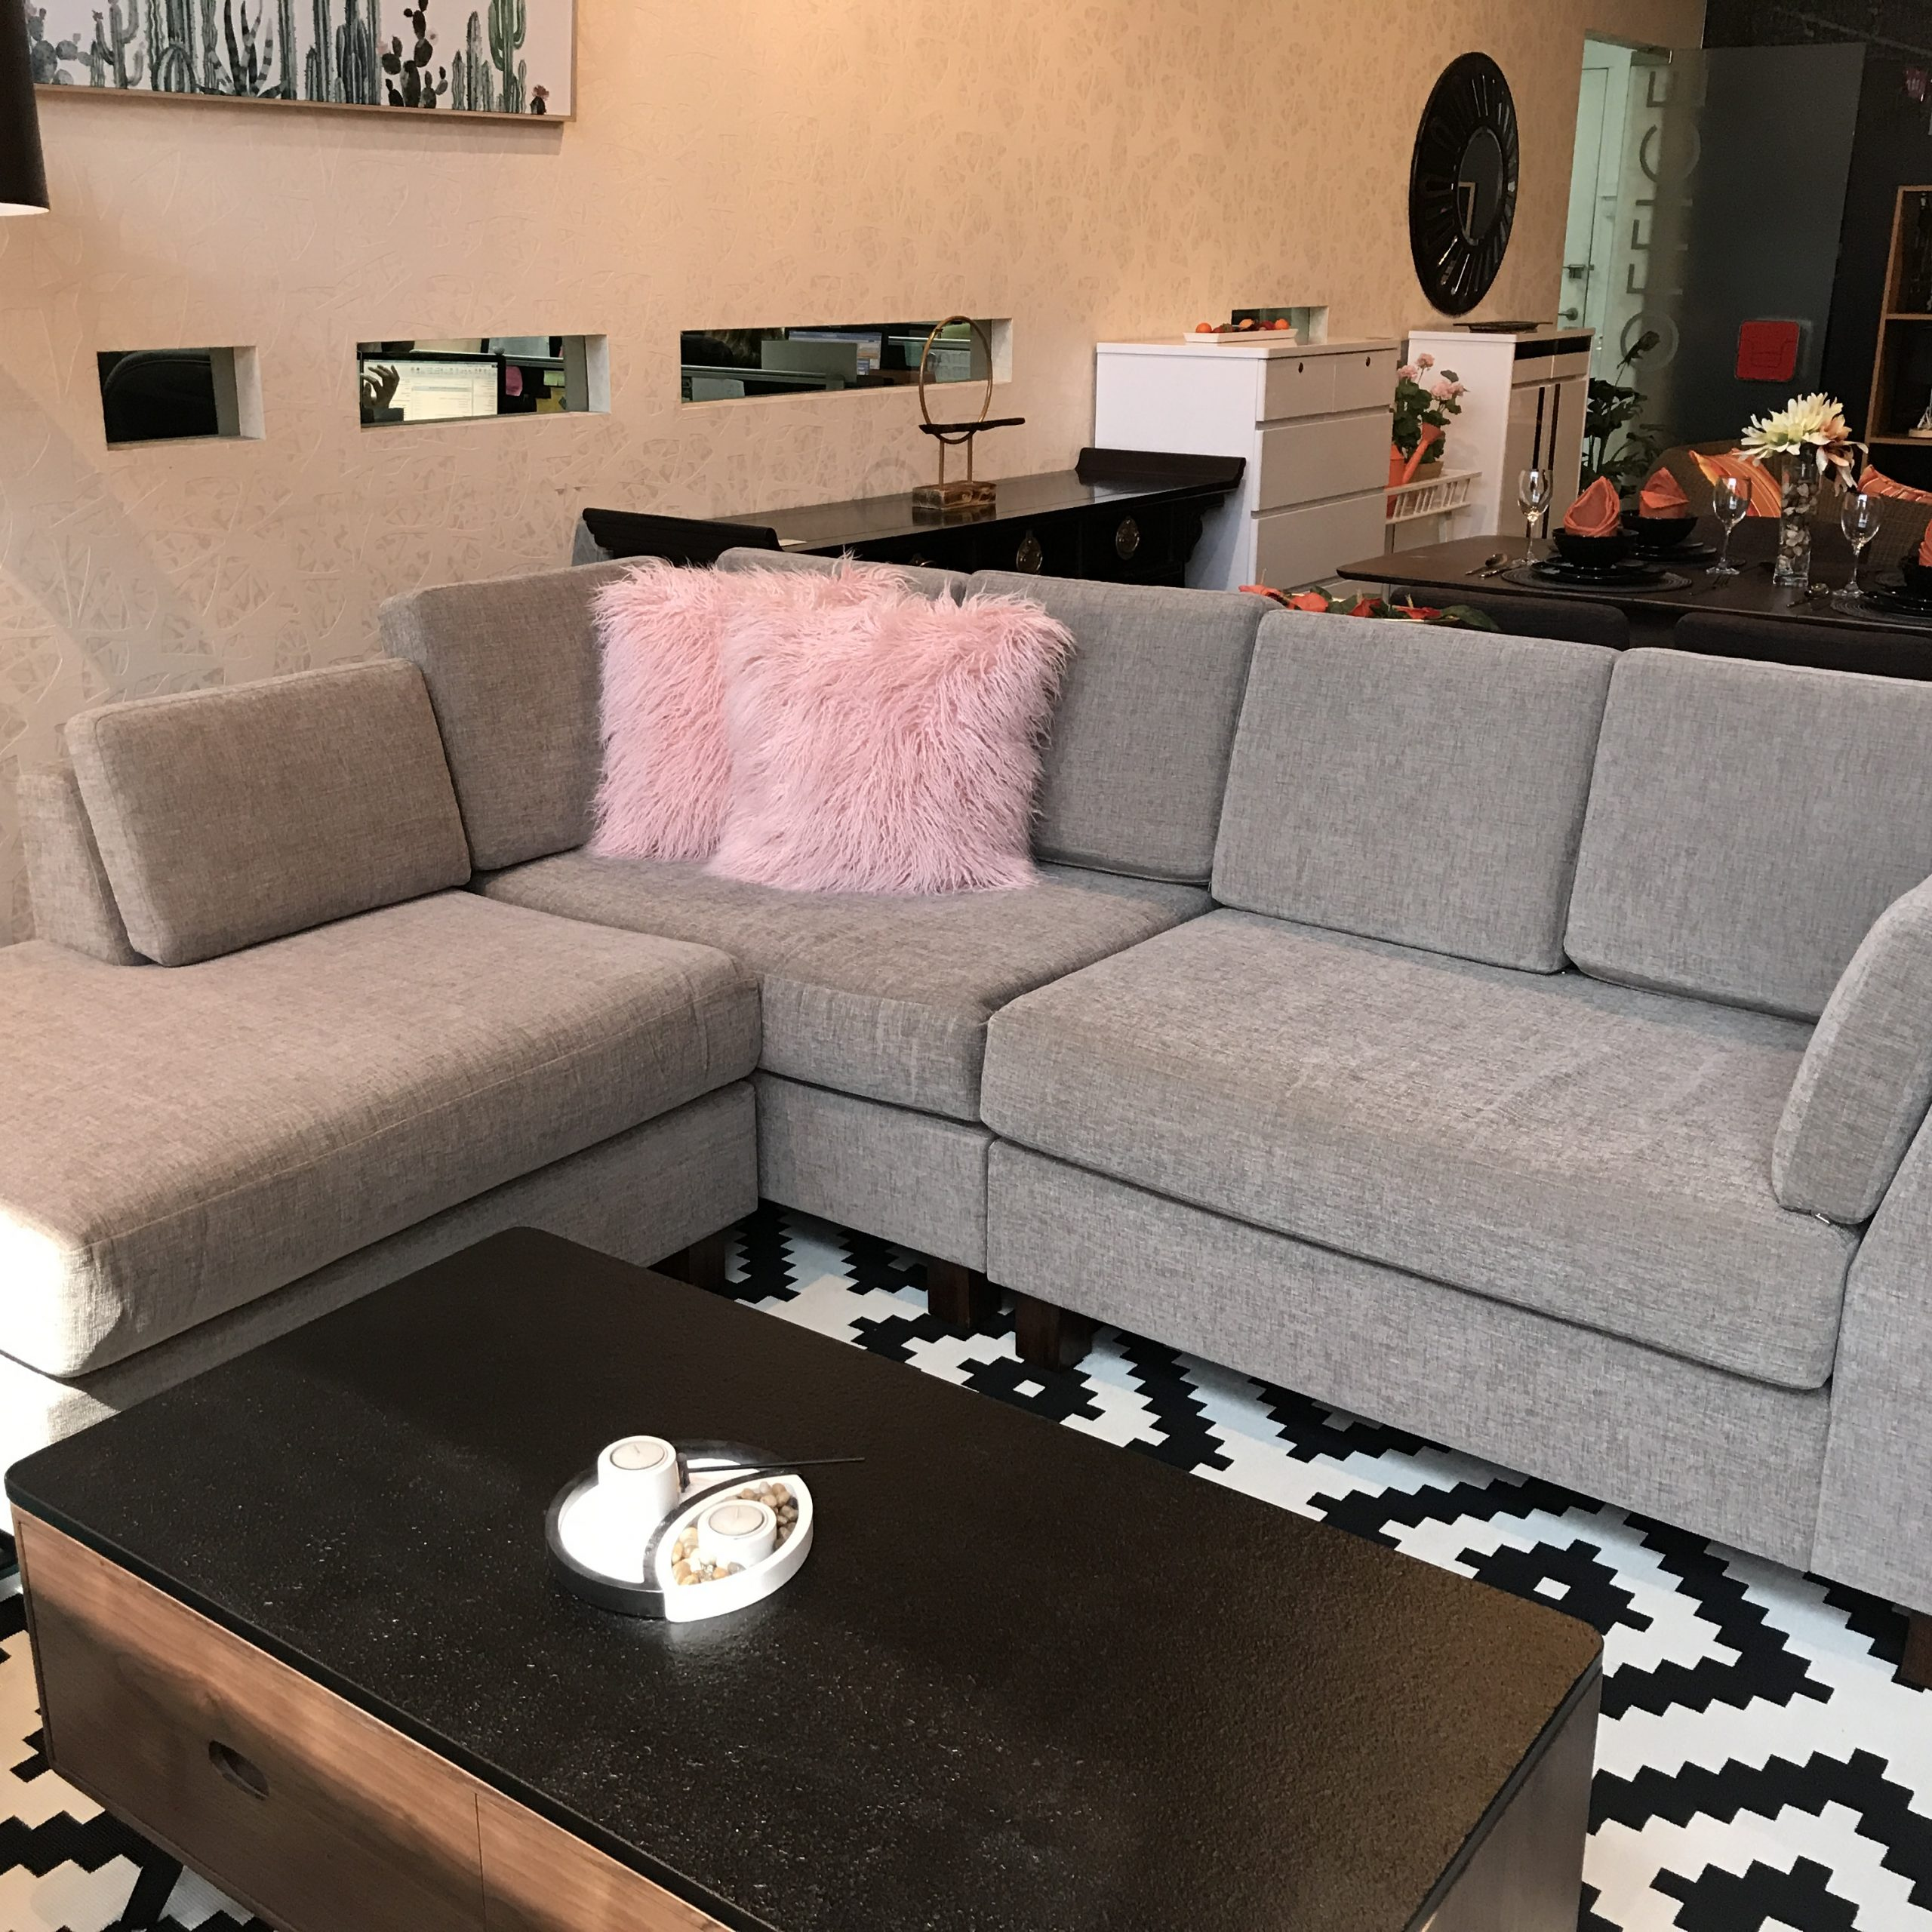 Owego L Shaped Sectional Sofas Throughout Trendy Product : 93 73 L Shaped Sofa (View 10 of 20)